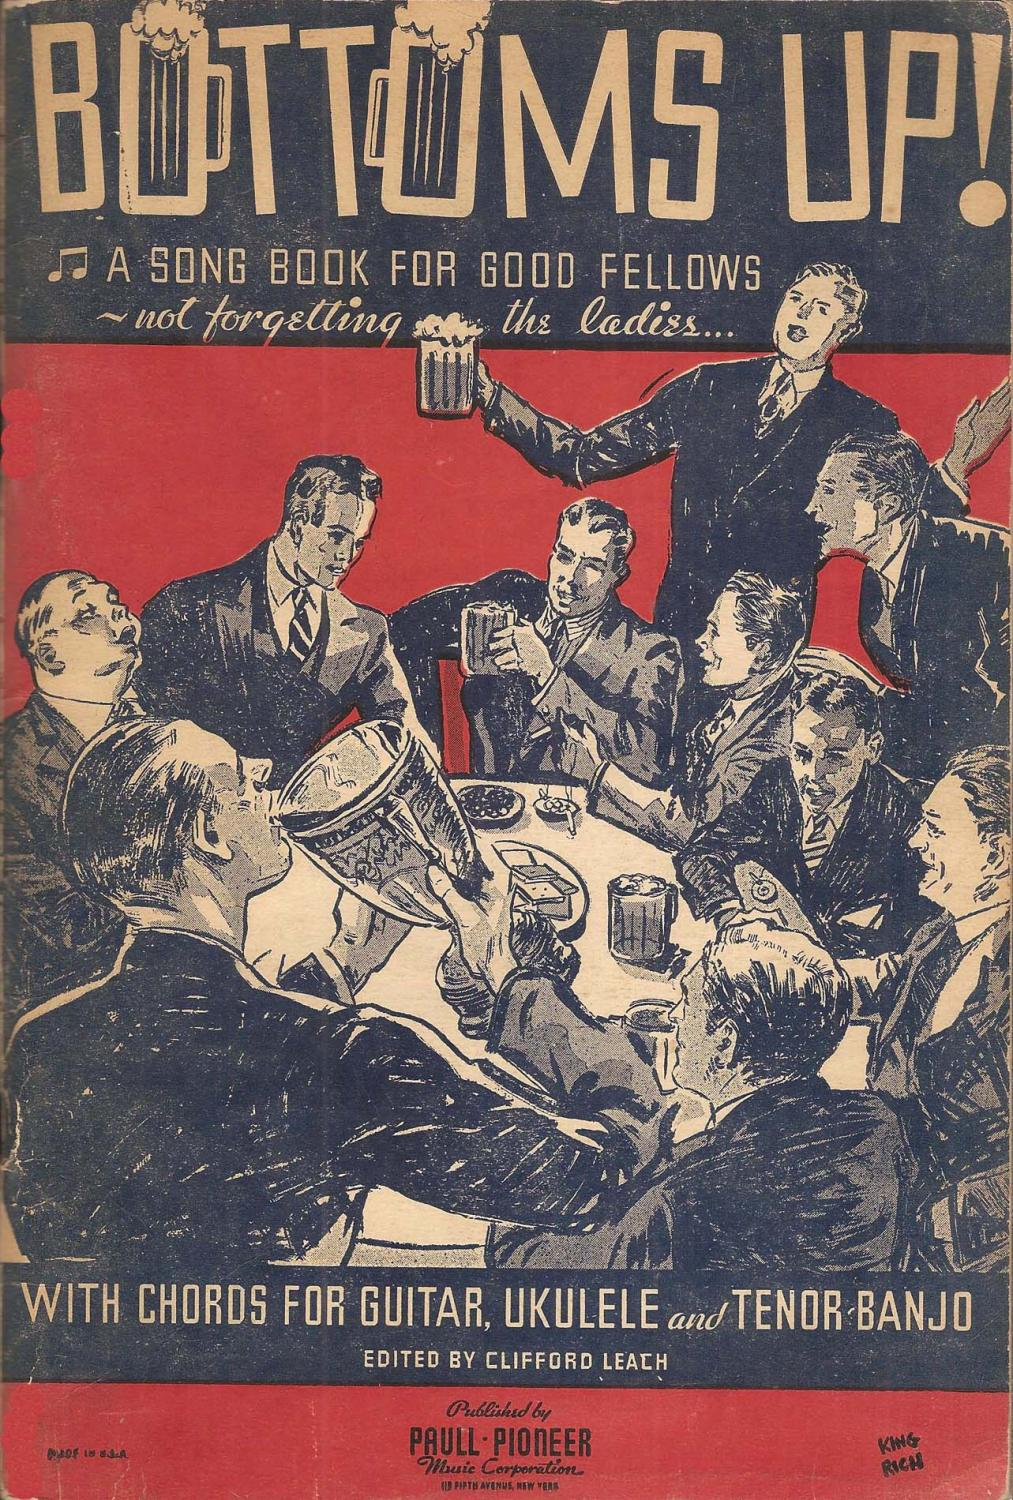 Bottoms Up A Songbook For Good Fellows Not Forgetting The Ladies